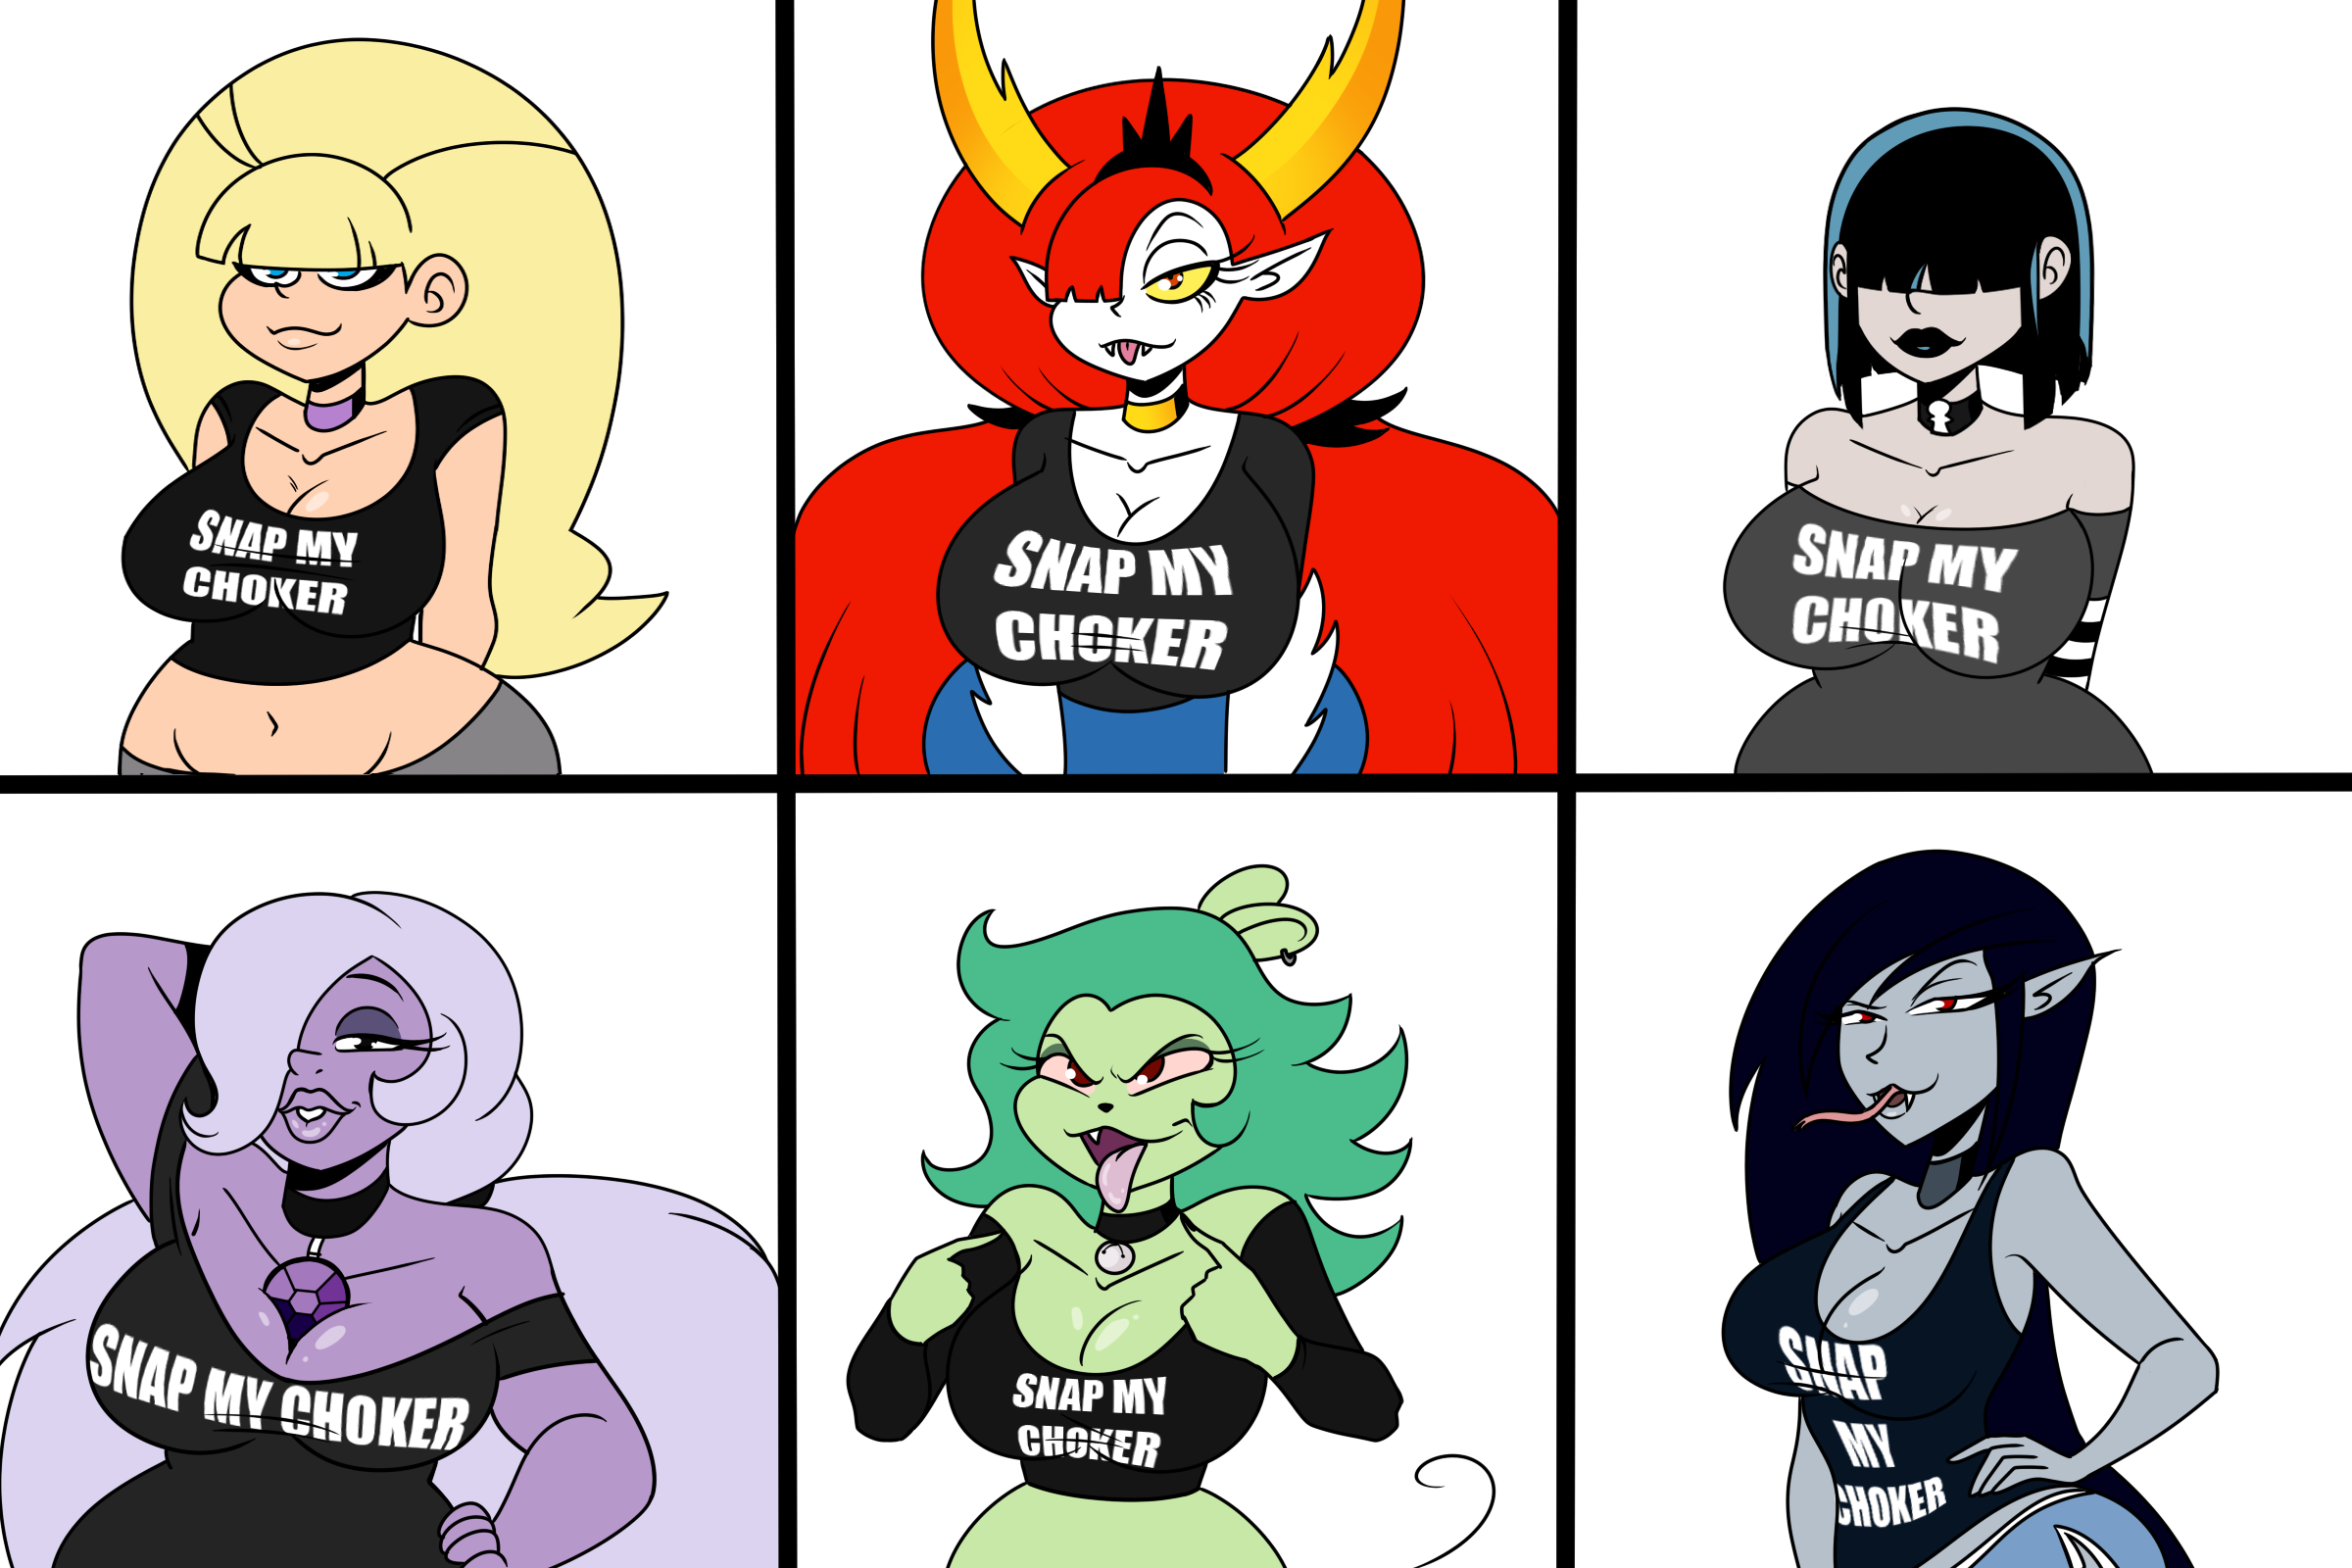 THICC-Verse: Snap my Choker by Chillguydraws on Newgrounds